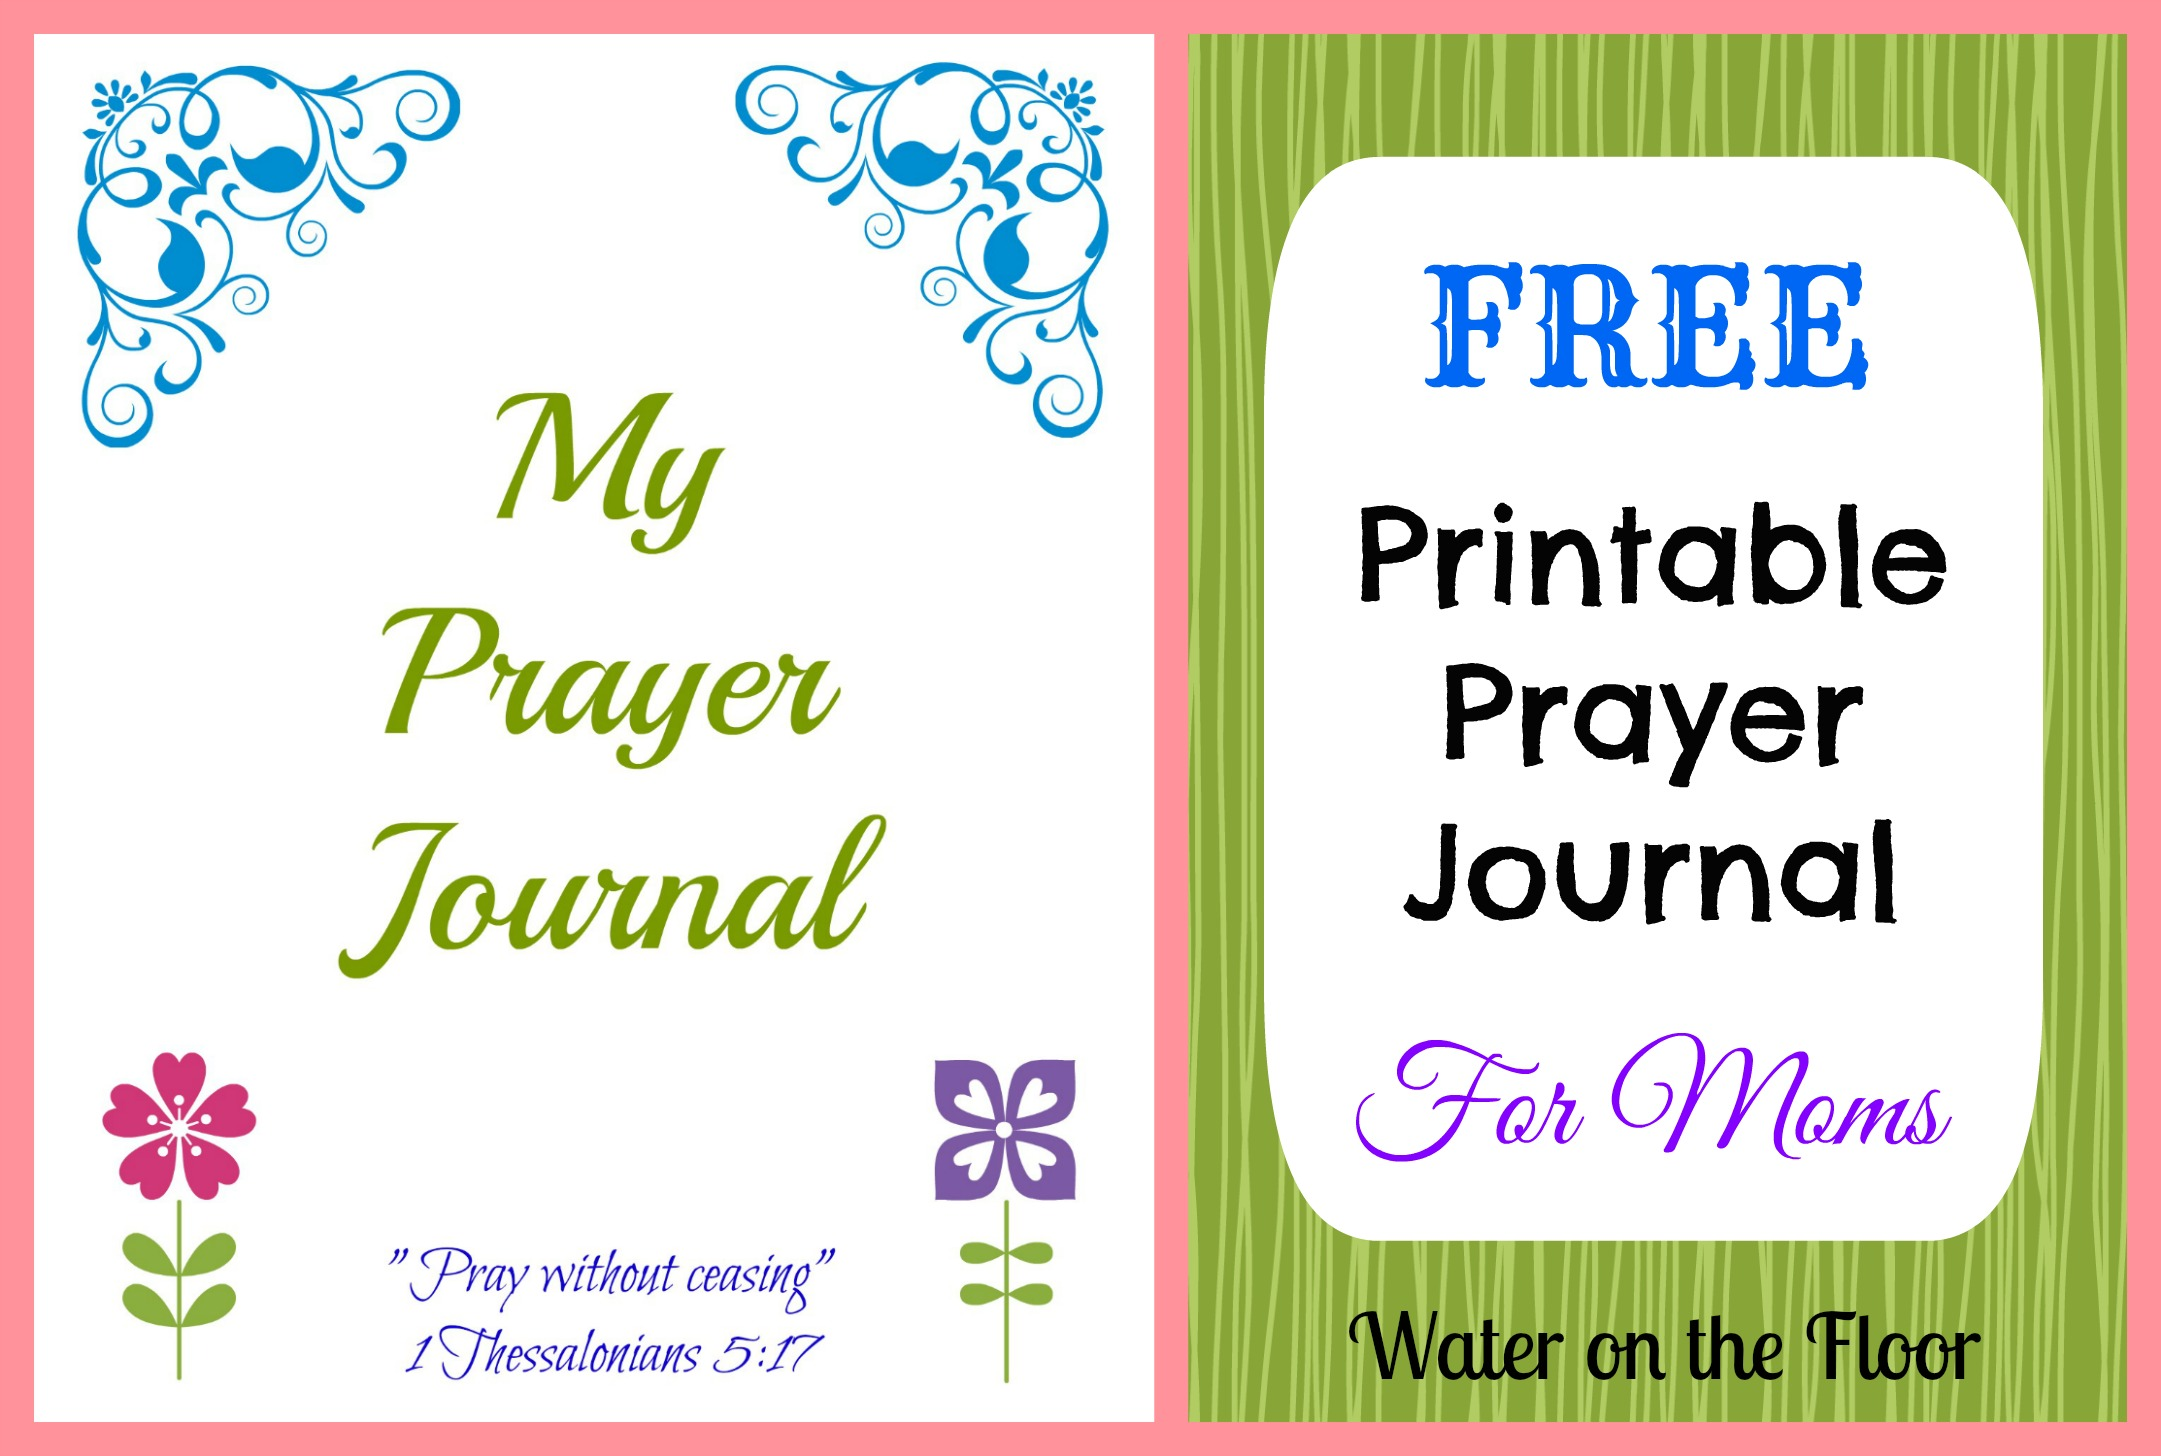 Divine image regarding free printable prayer journal